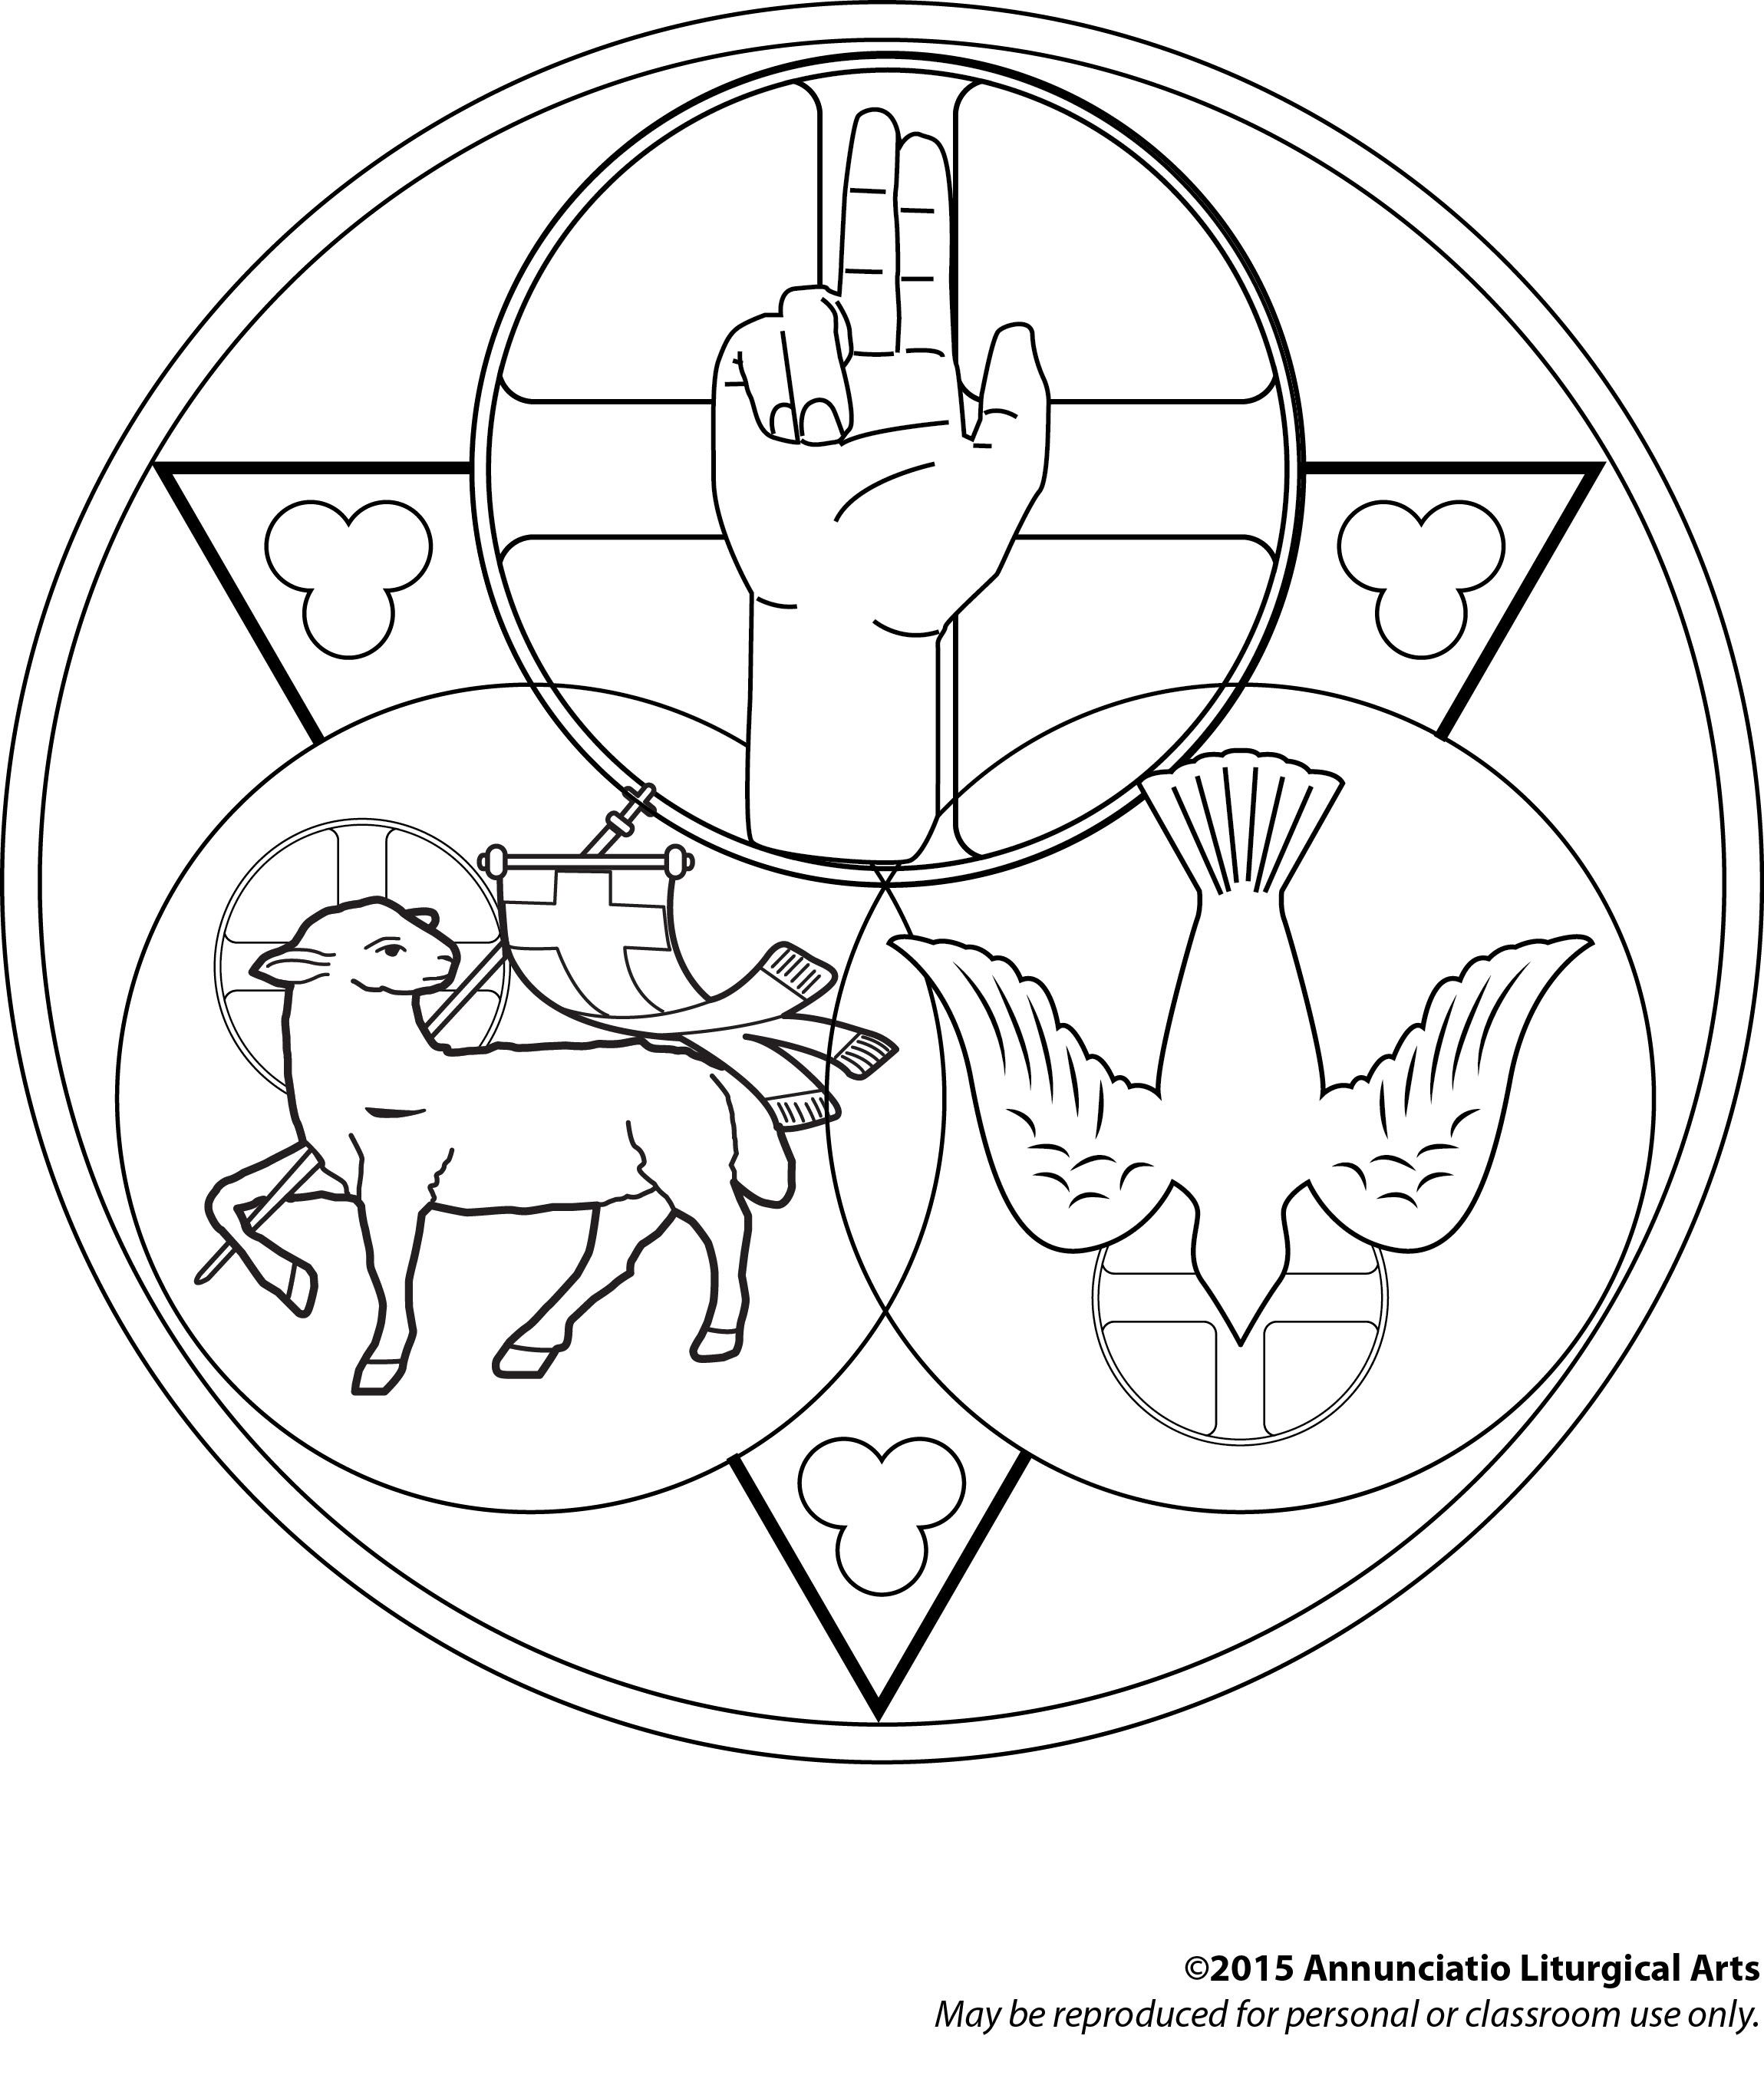 colouring pages for trinity sunday trinity sunday clip art free sketch coloring page pages sunday for trinity colouring